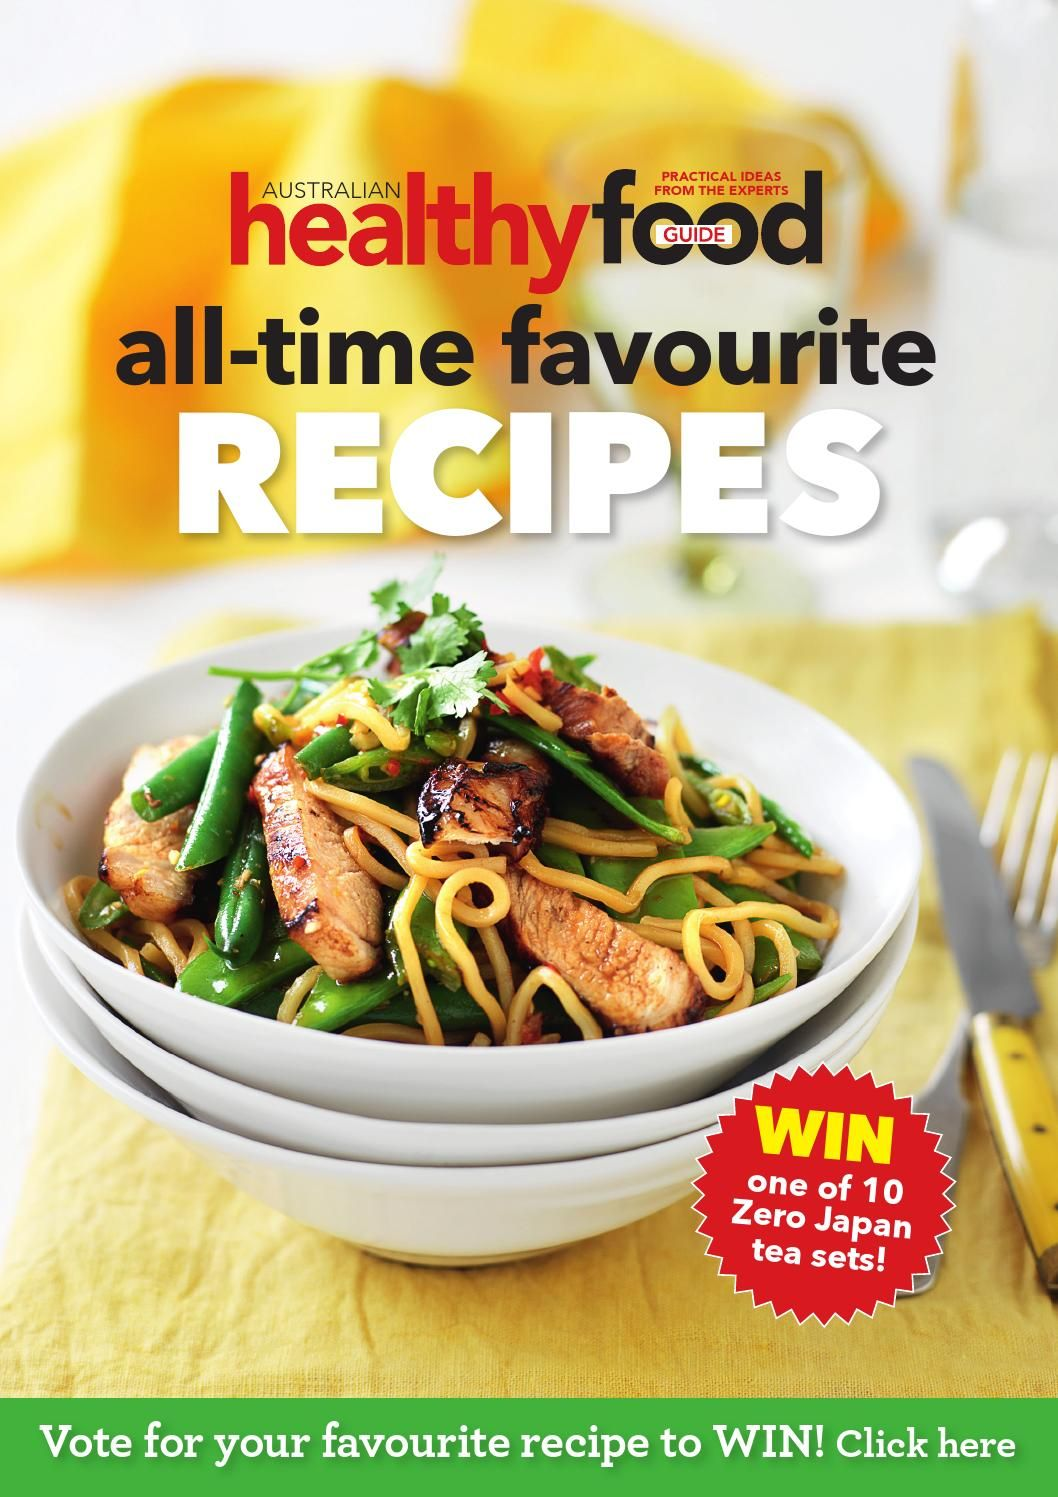 Healthy food guide all time favourite recipes favorite recipes healthy food guide all time favourite recipes forumfinder Choice Image